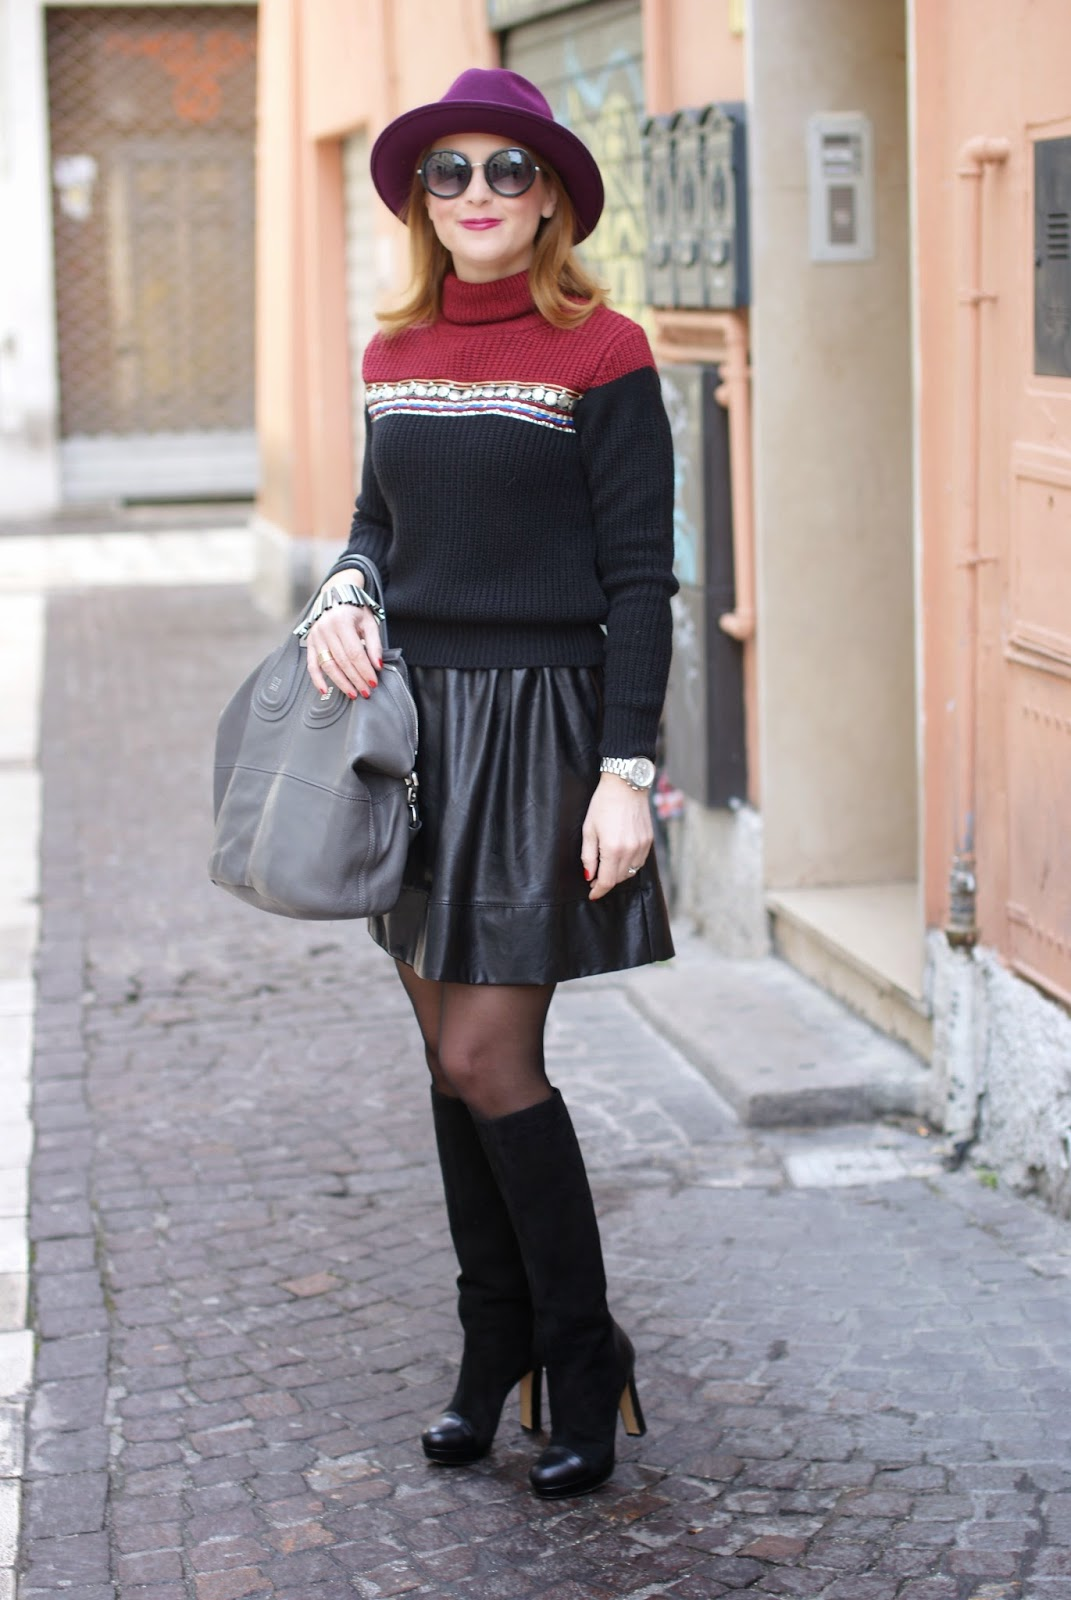 Eco-leather mini circle skirt, ribbed knit turtleneck sweater, Fashion and Cookies, fashion blogger